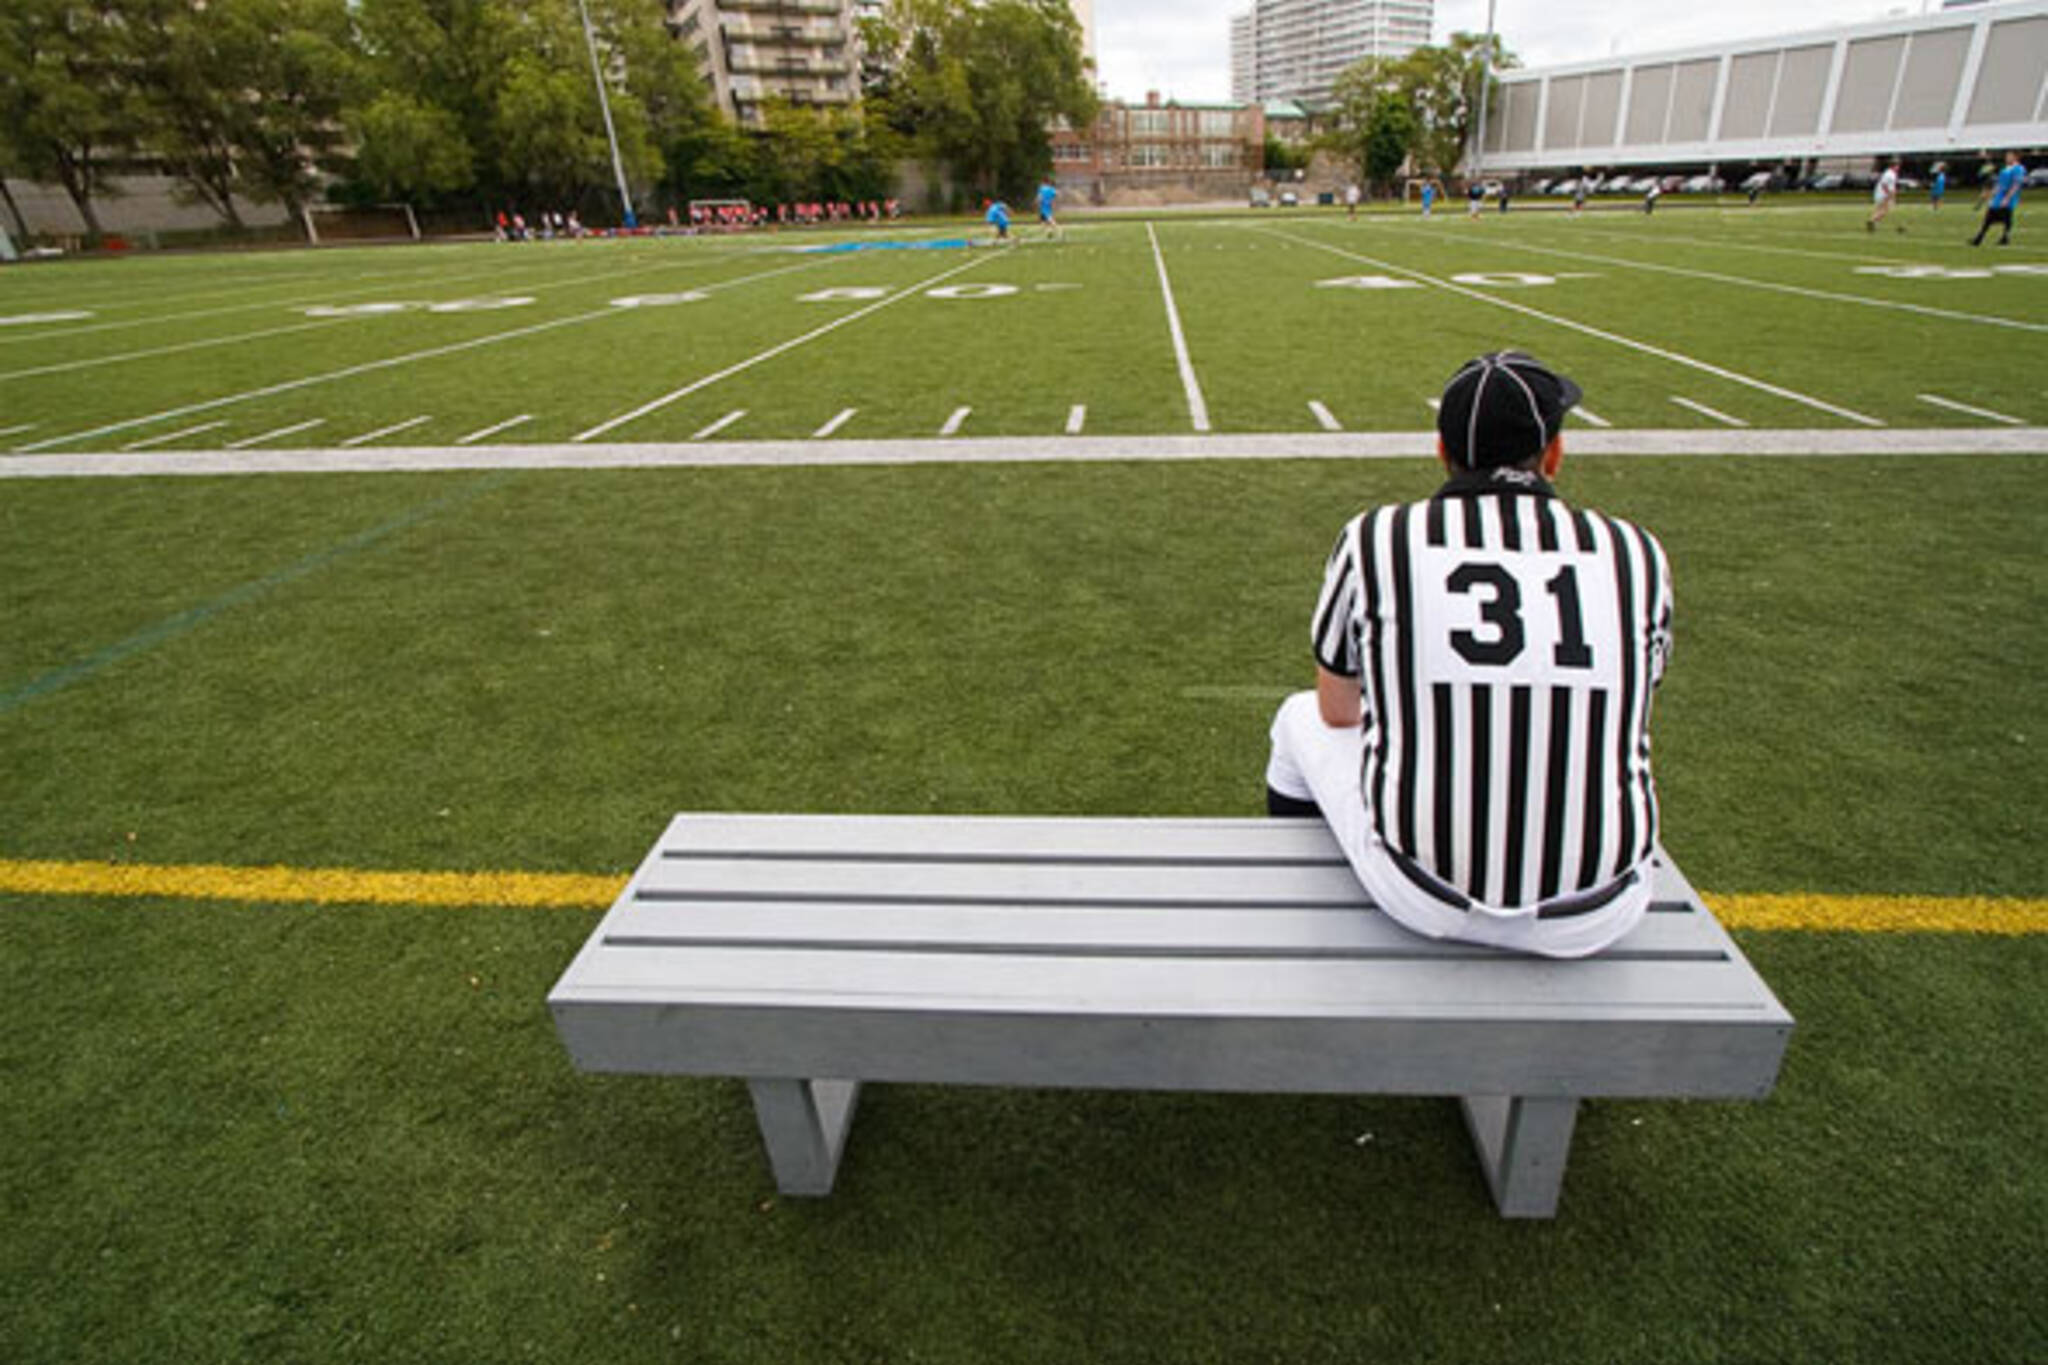 referee field